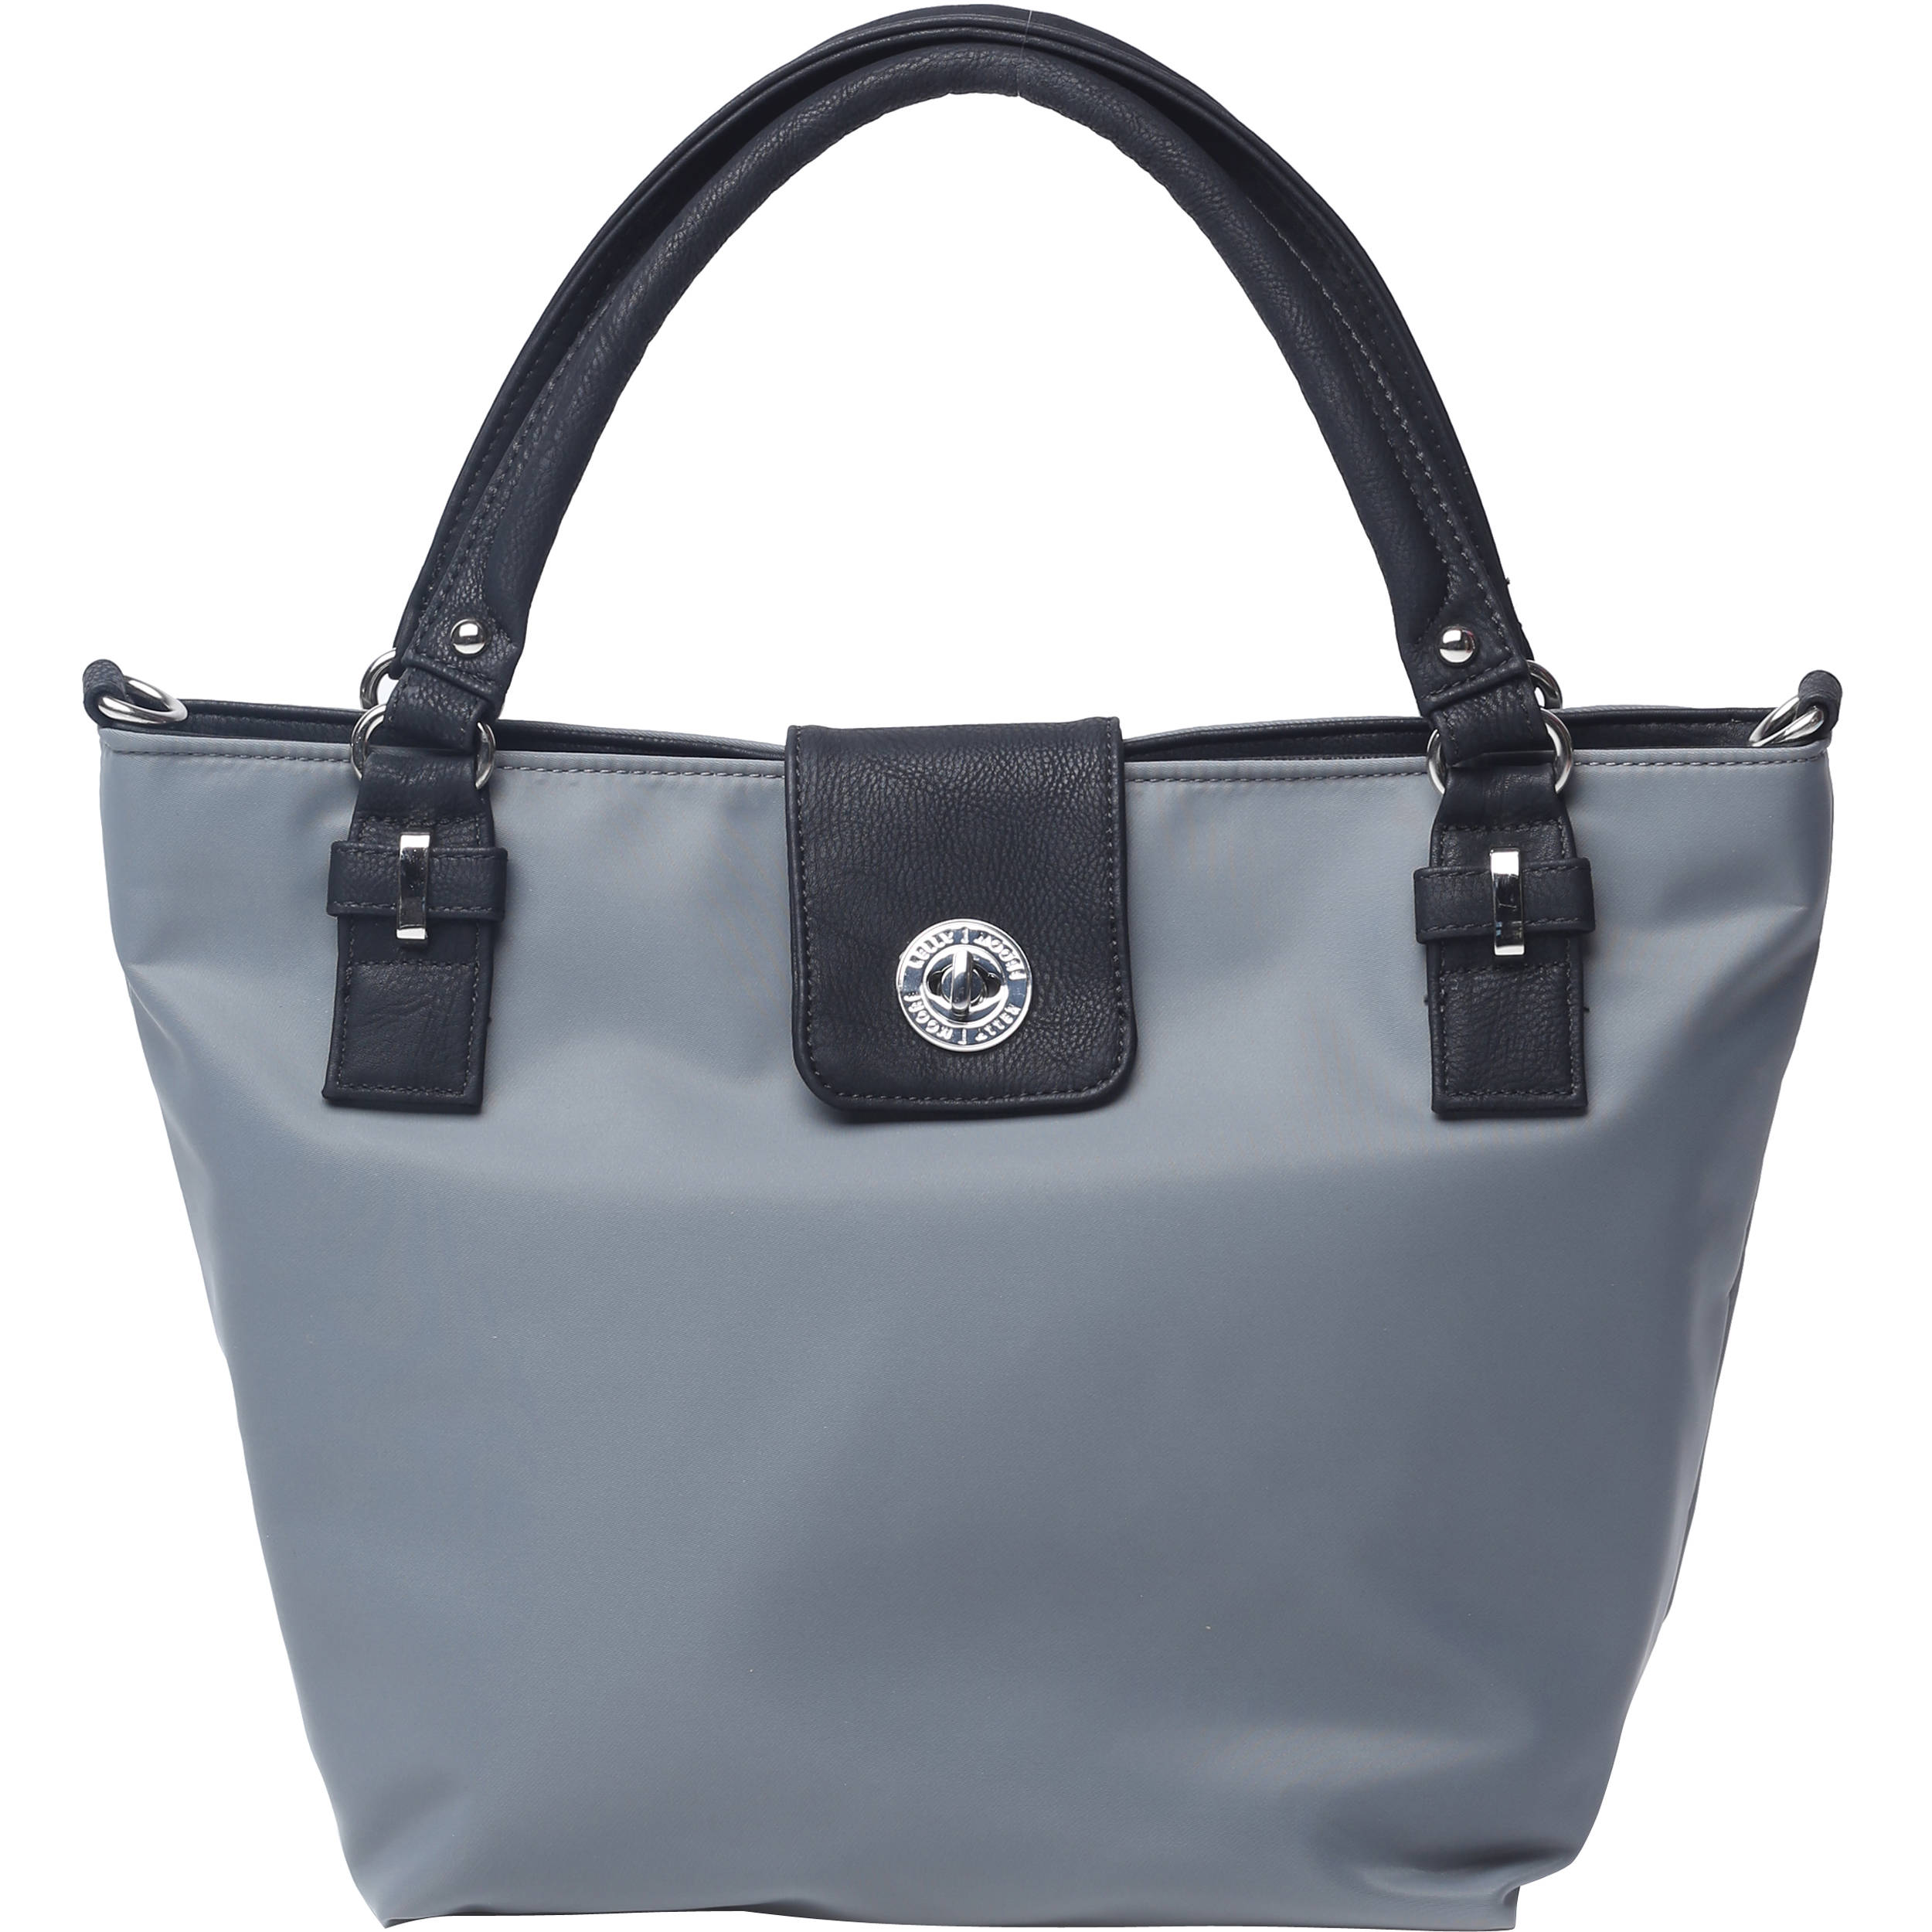 Kelly moore bag saratoga bag with removable basket km 1813 grey